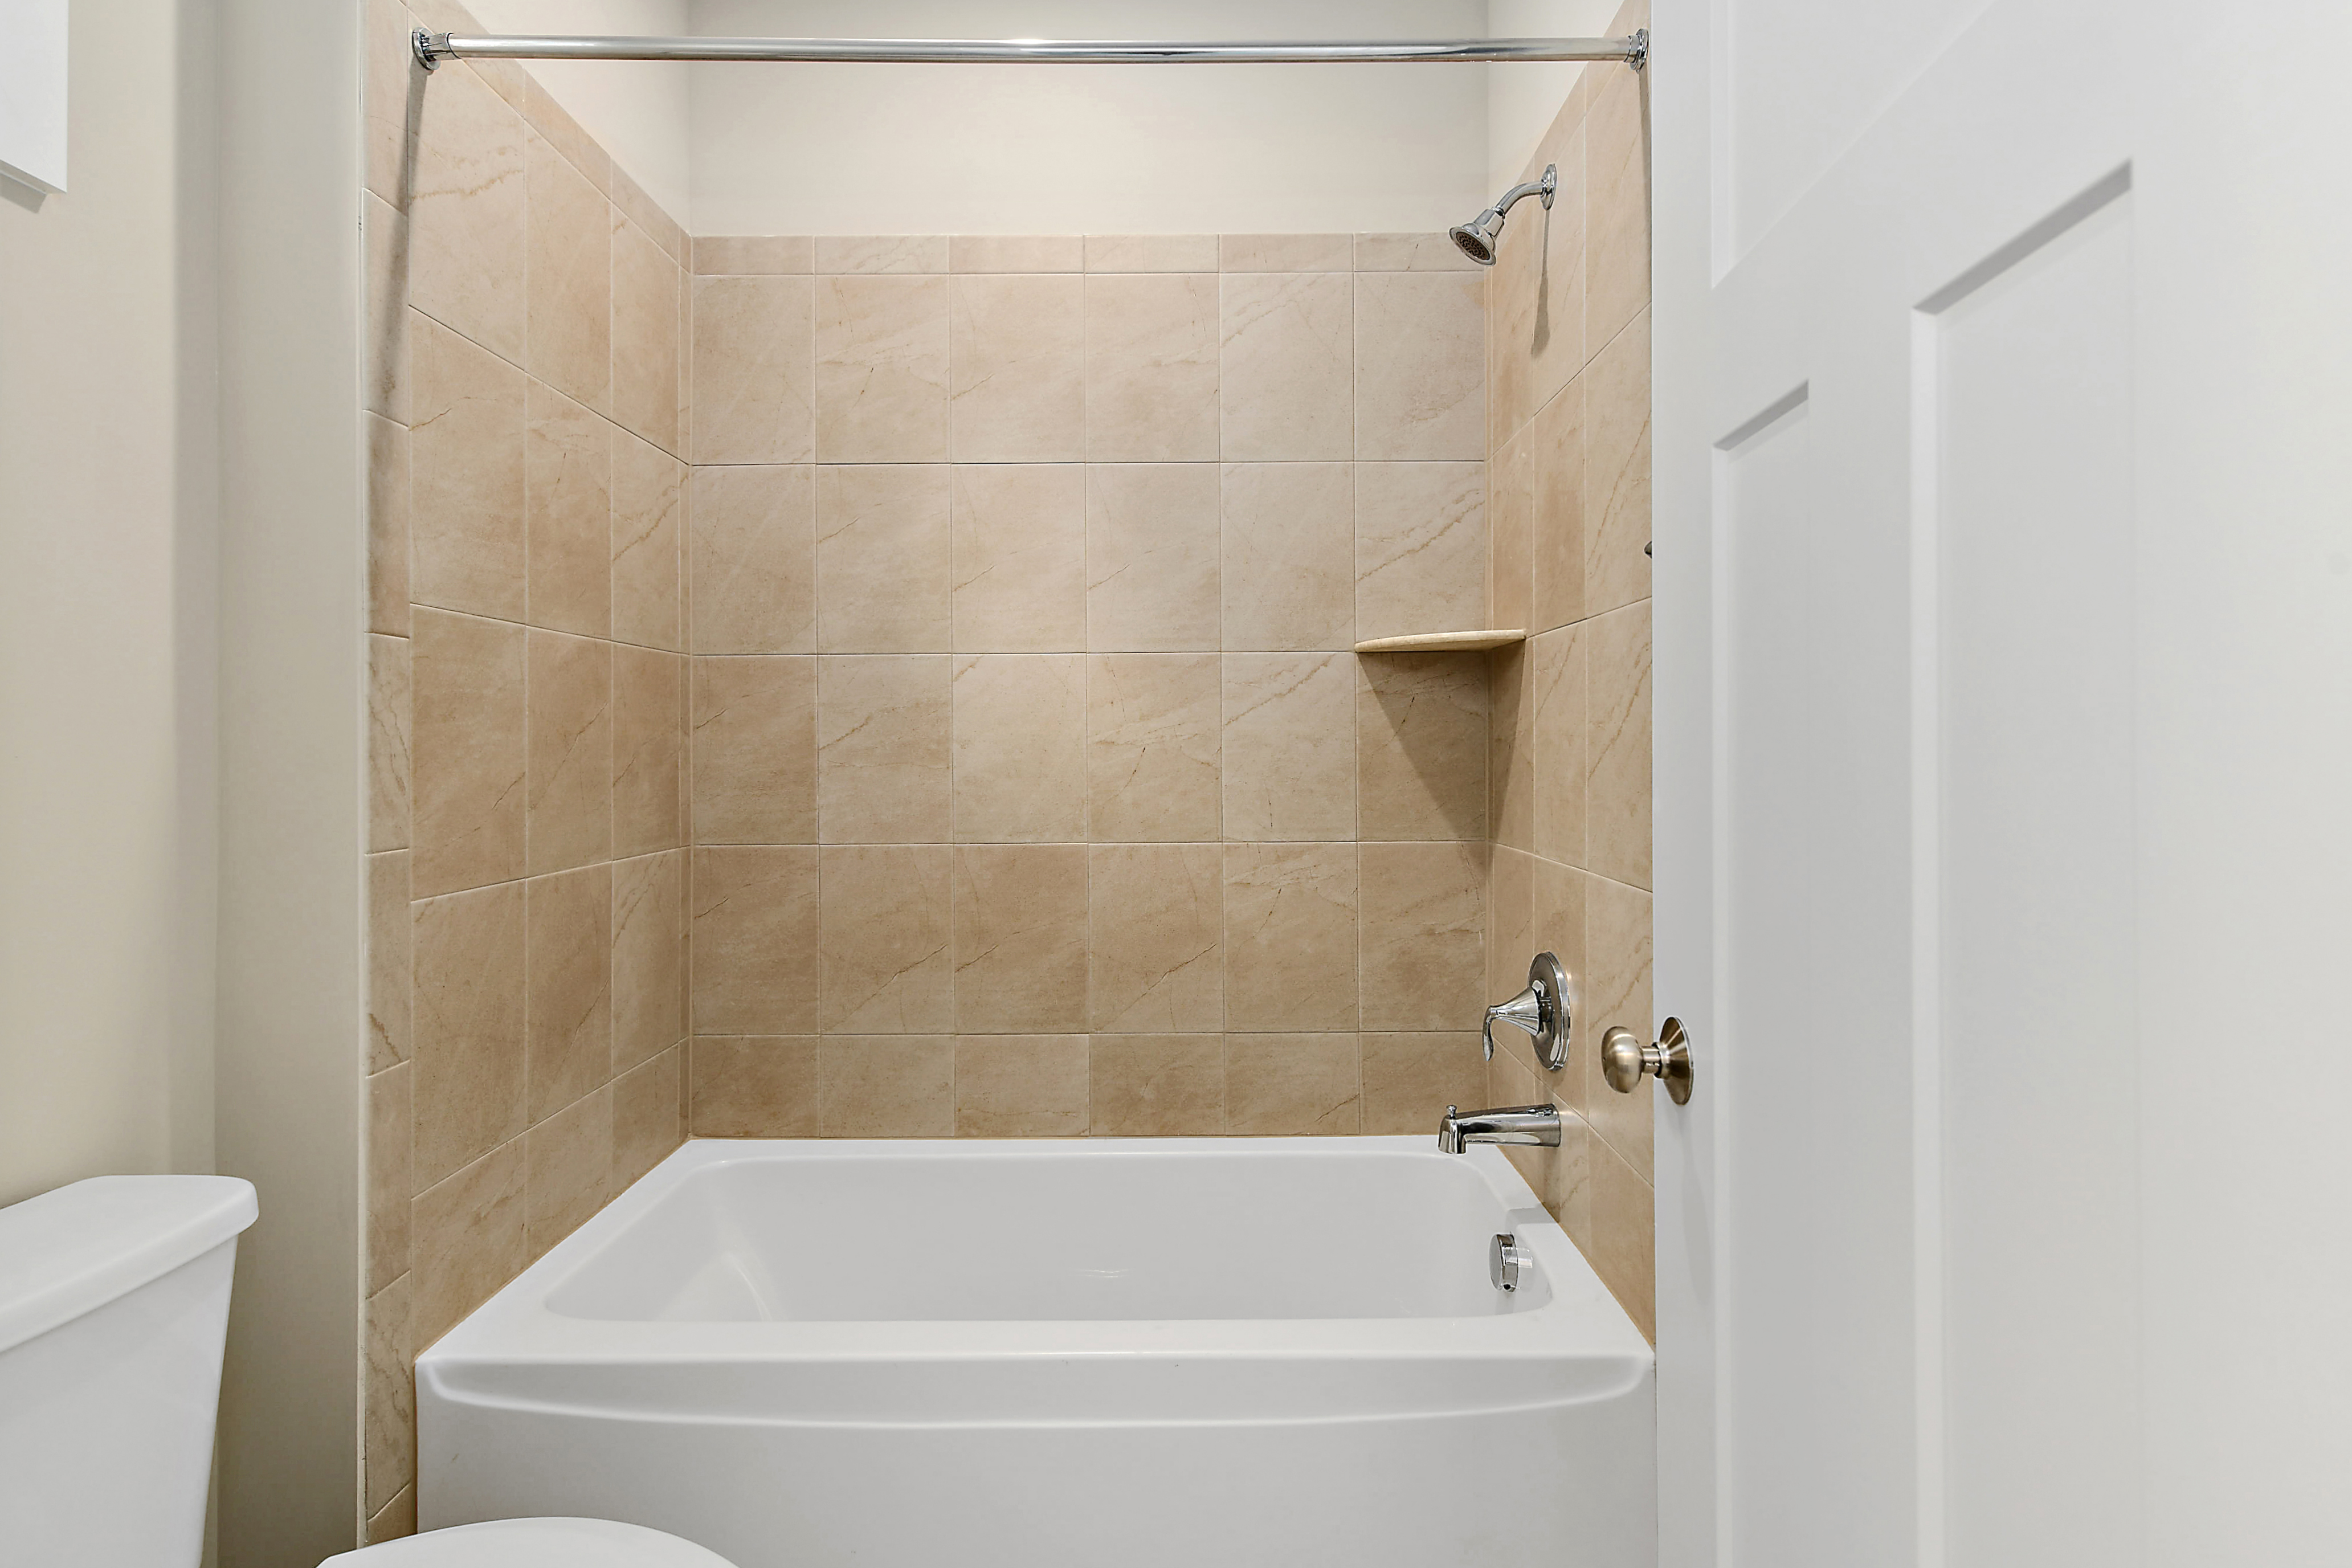 Hall Bathroom with Tub and Tile